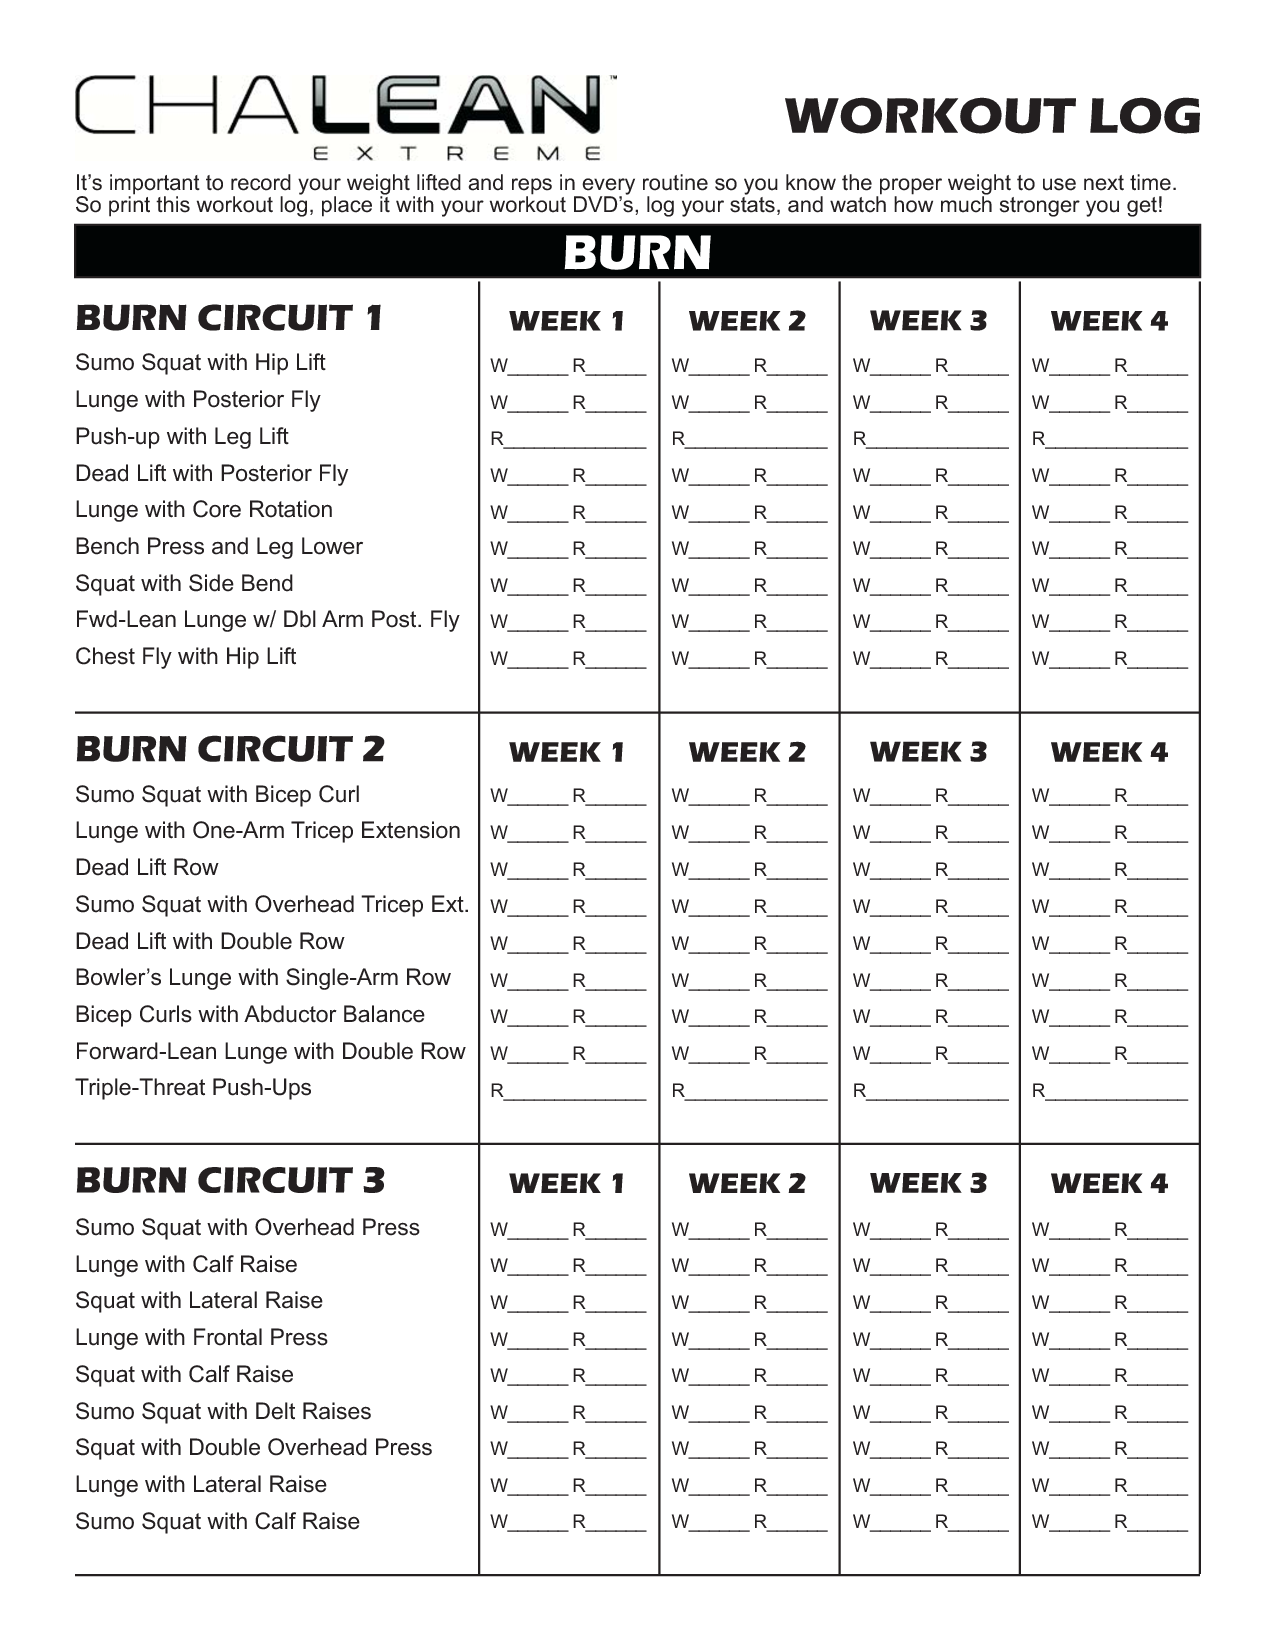 Pin by Shelley Elmore on weight loss | Extreme workouts, Workout